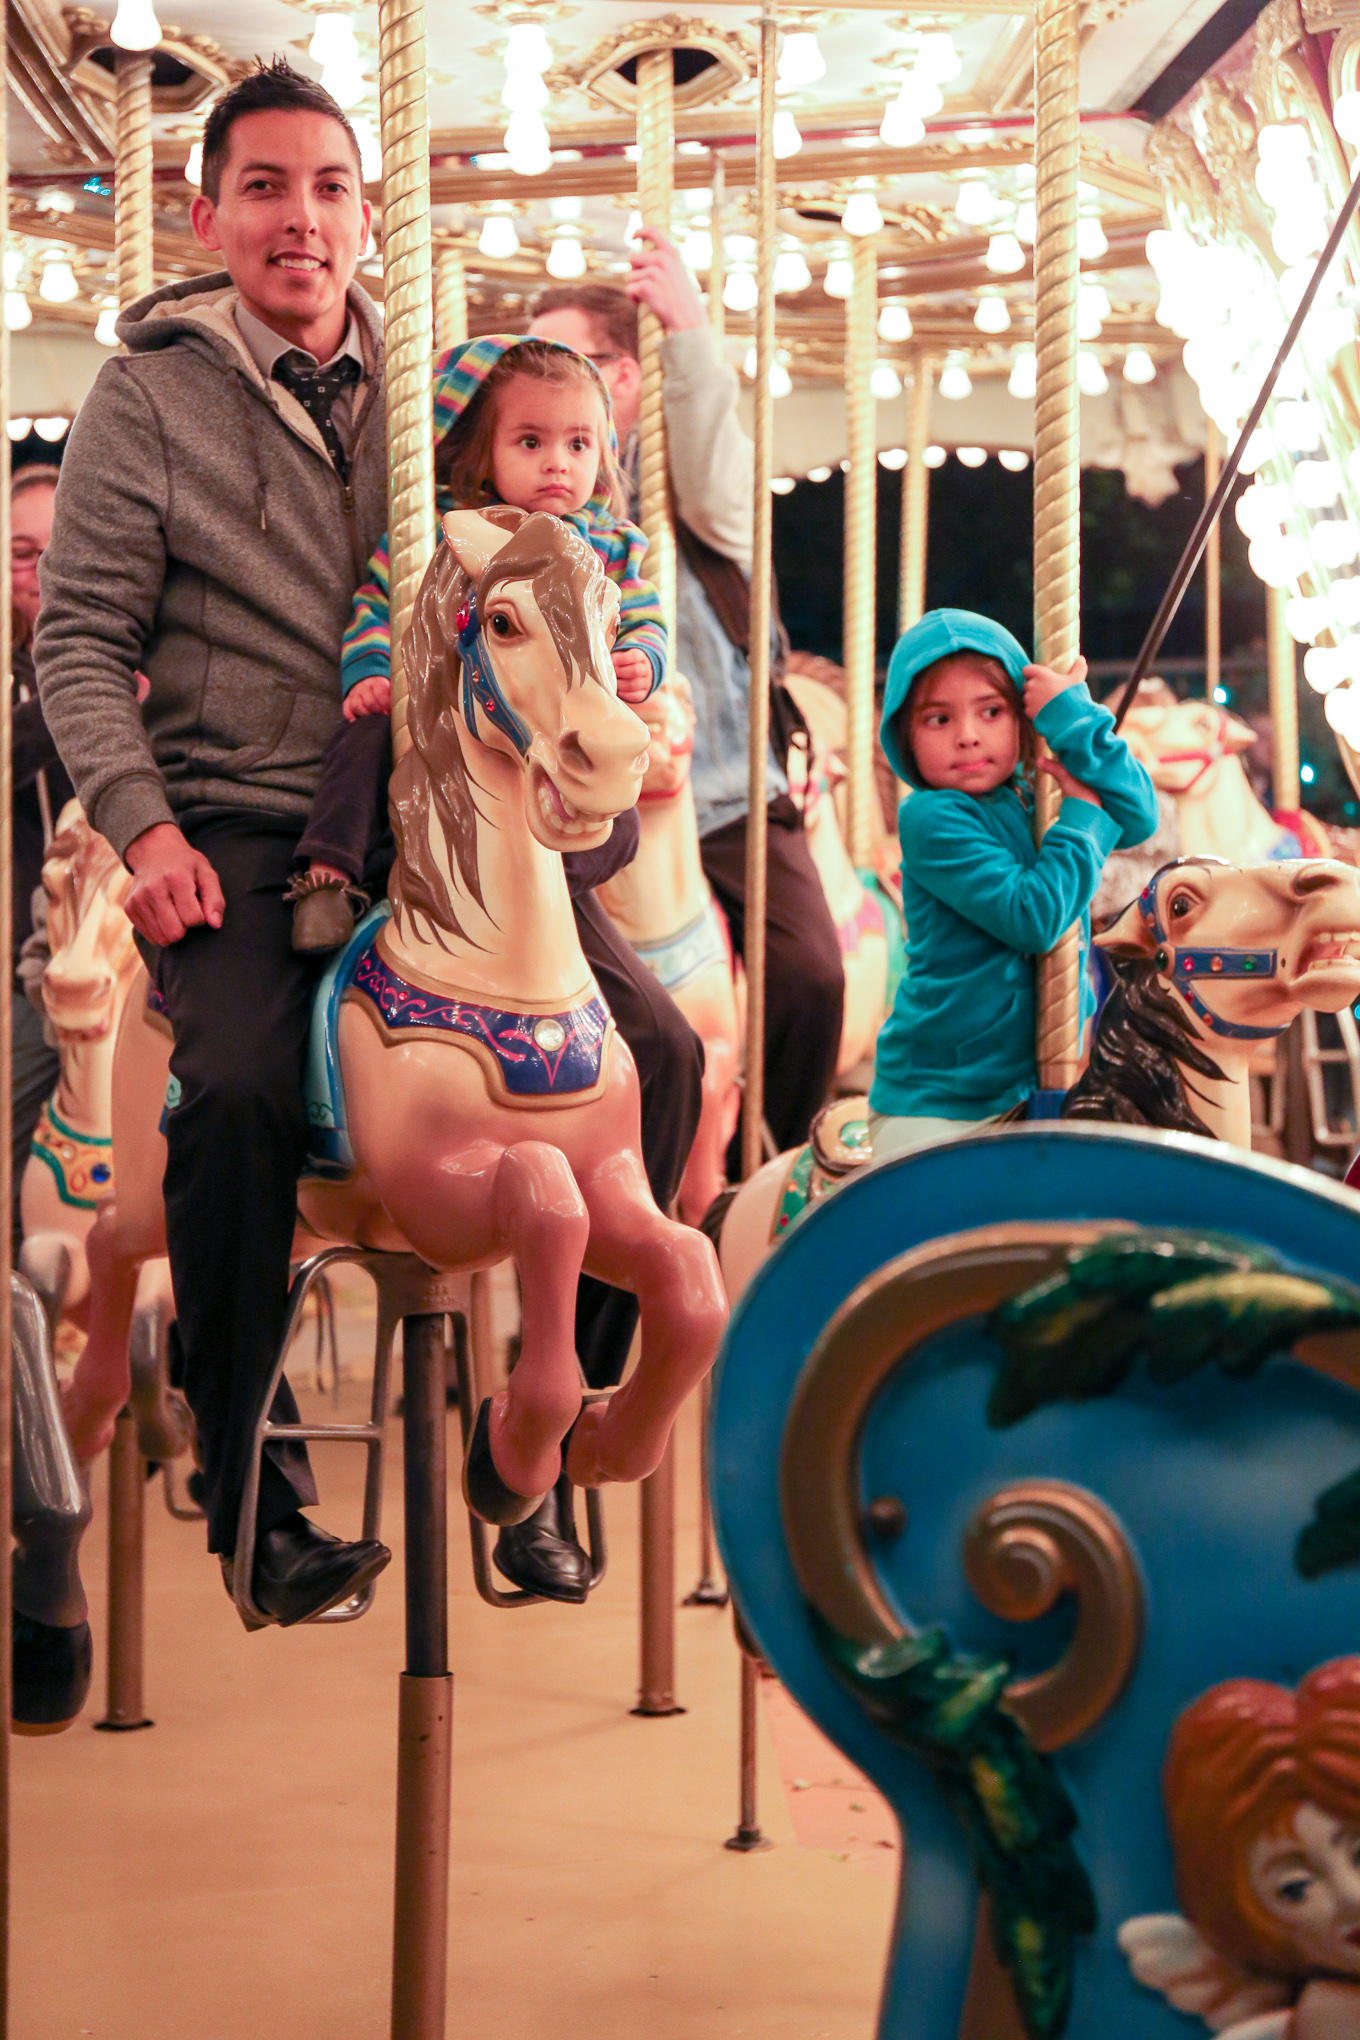 Dr. Smith with his family riding the carousel